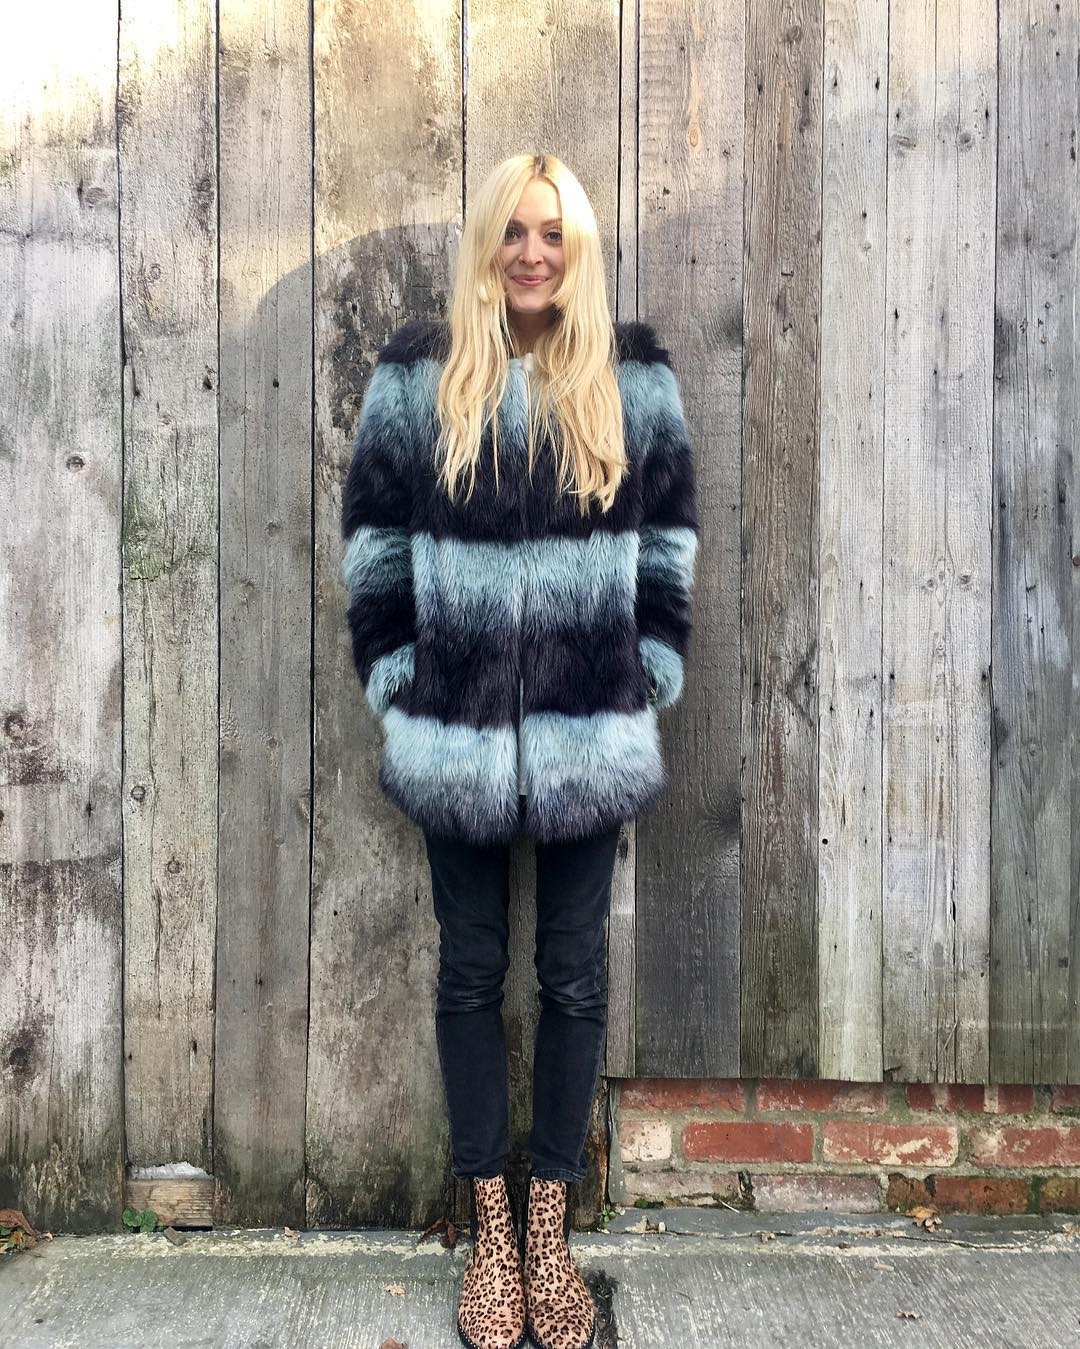 cf1aaf3c33 Lovely Fearne can always be relied upon to put the fun into fashion, and we  love her cool faux fur coat and leopard print boots.